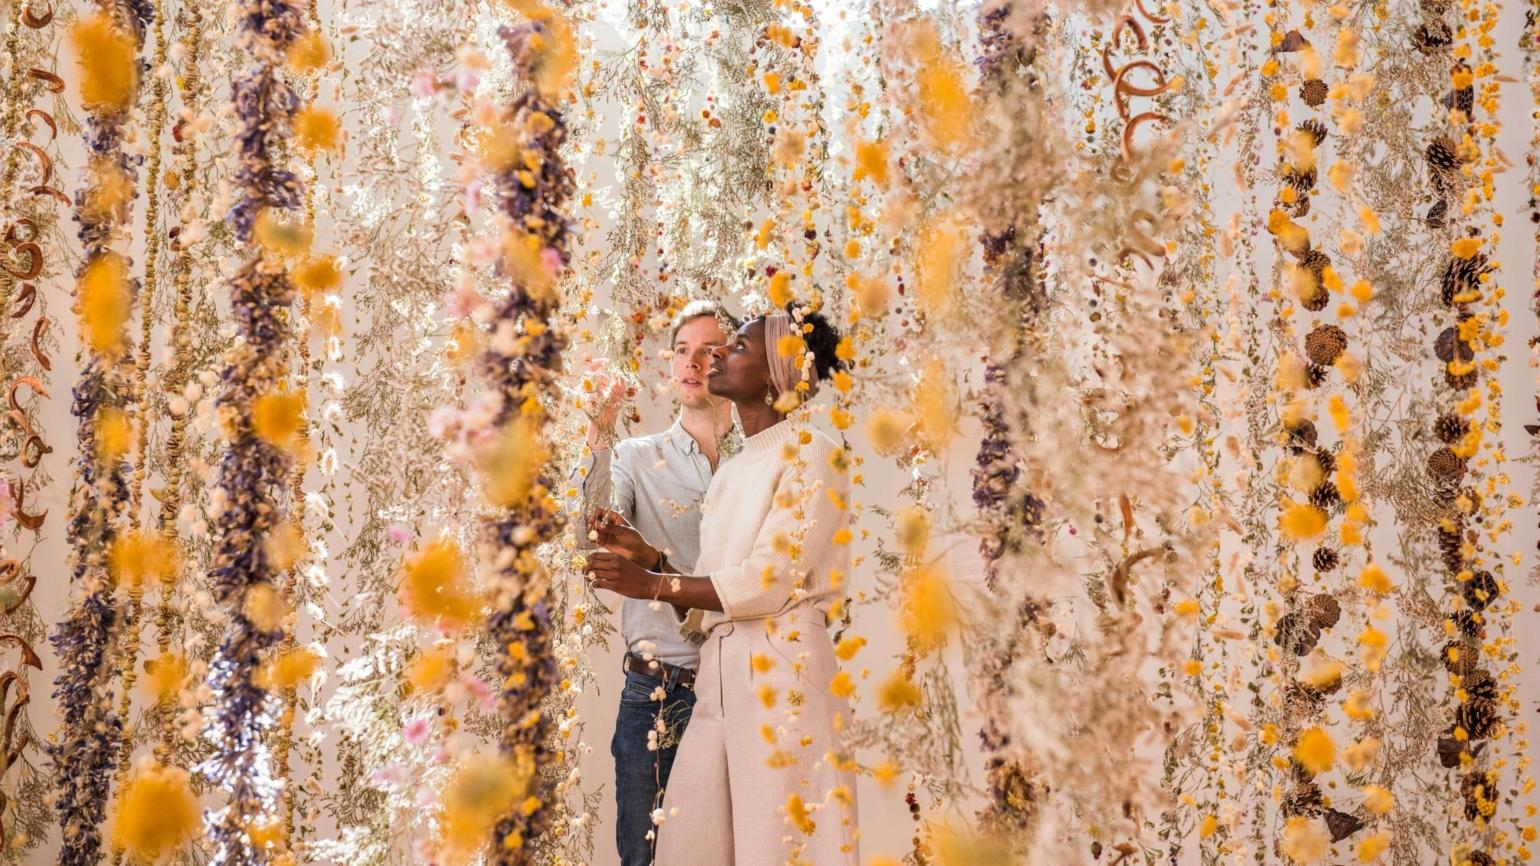 'Life in death,' a temporary installation of 1,000 flower garlands by Rebecca Louise Law at the Shirley Sherwood Gallery of Botanical Art